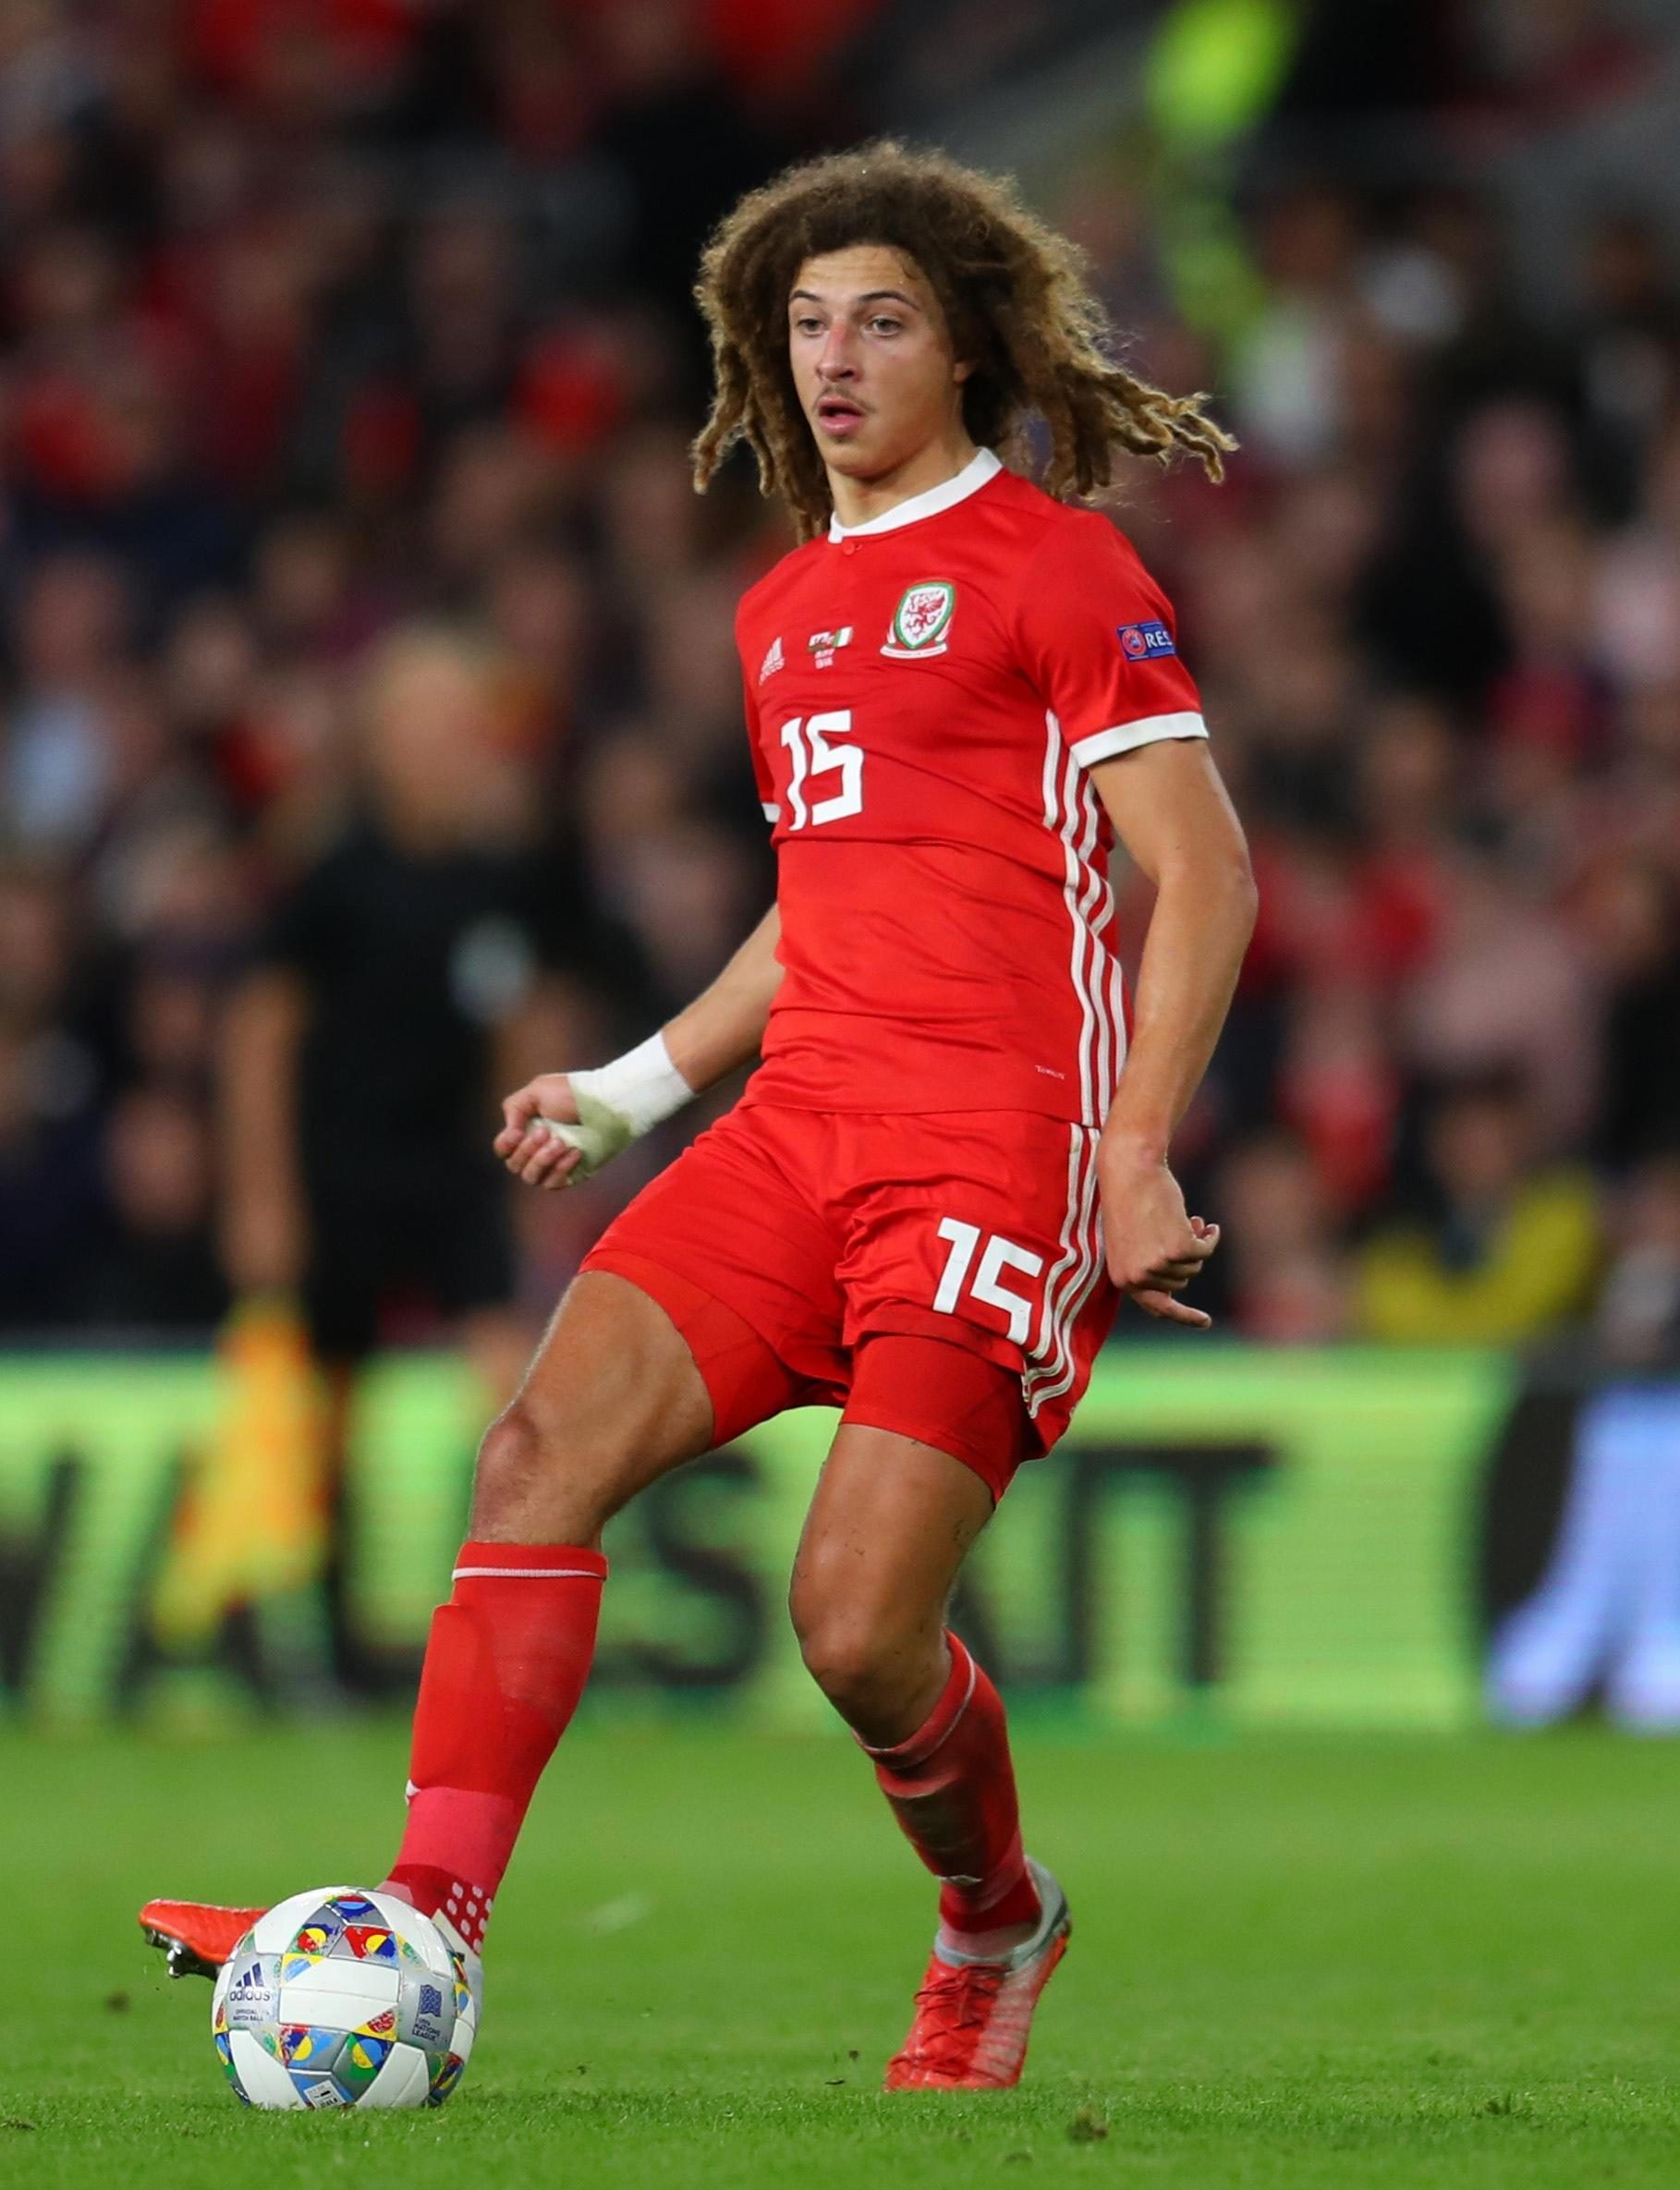 Ethan Ampadu may be down the pecking order for Chelsea, but is already becoming a regular starter for Wales